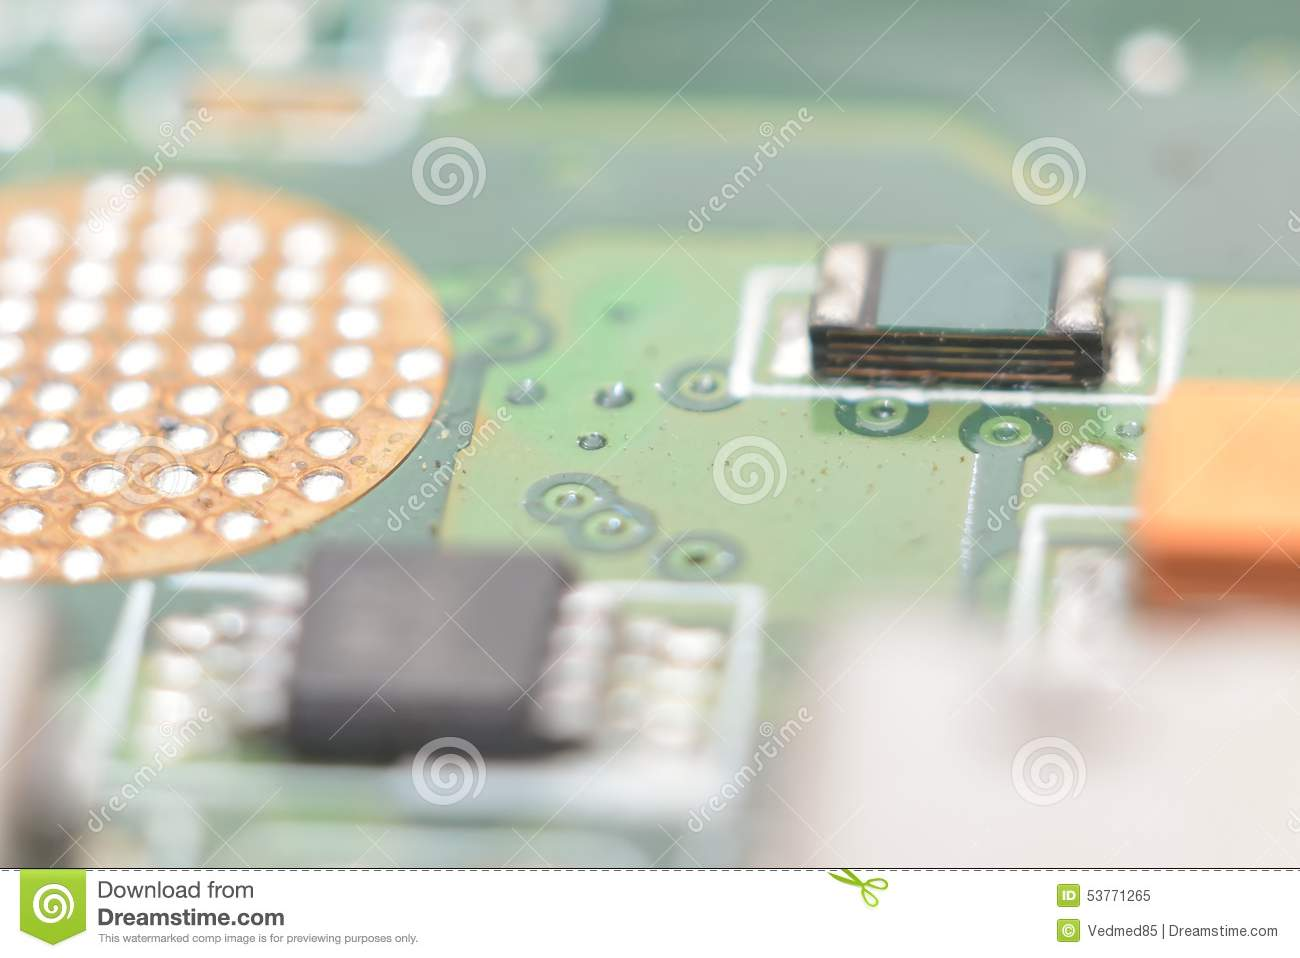 Electronics Circuits Background Stock Image Of Planar Integrated Used As Royalty Free Photos Photo